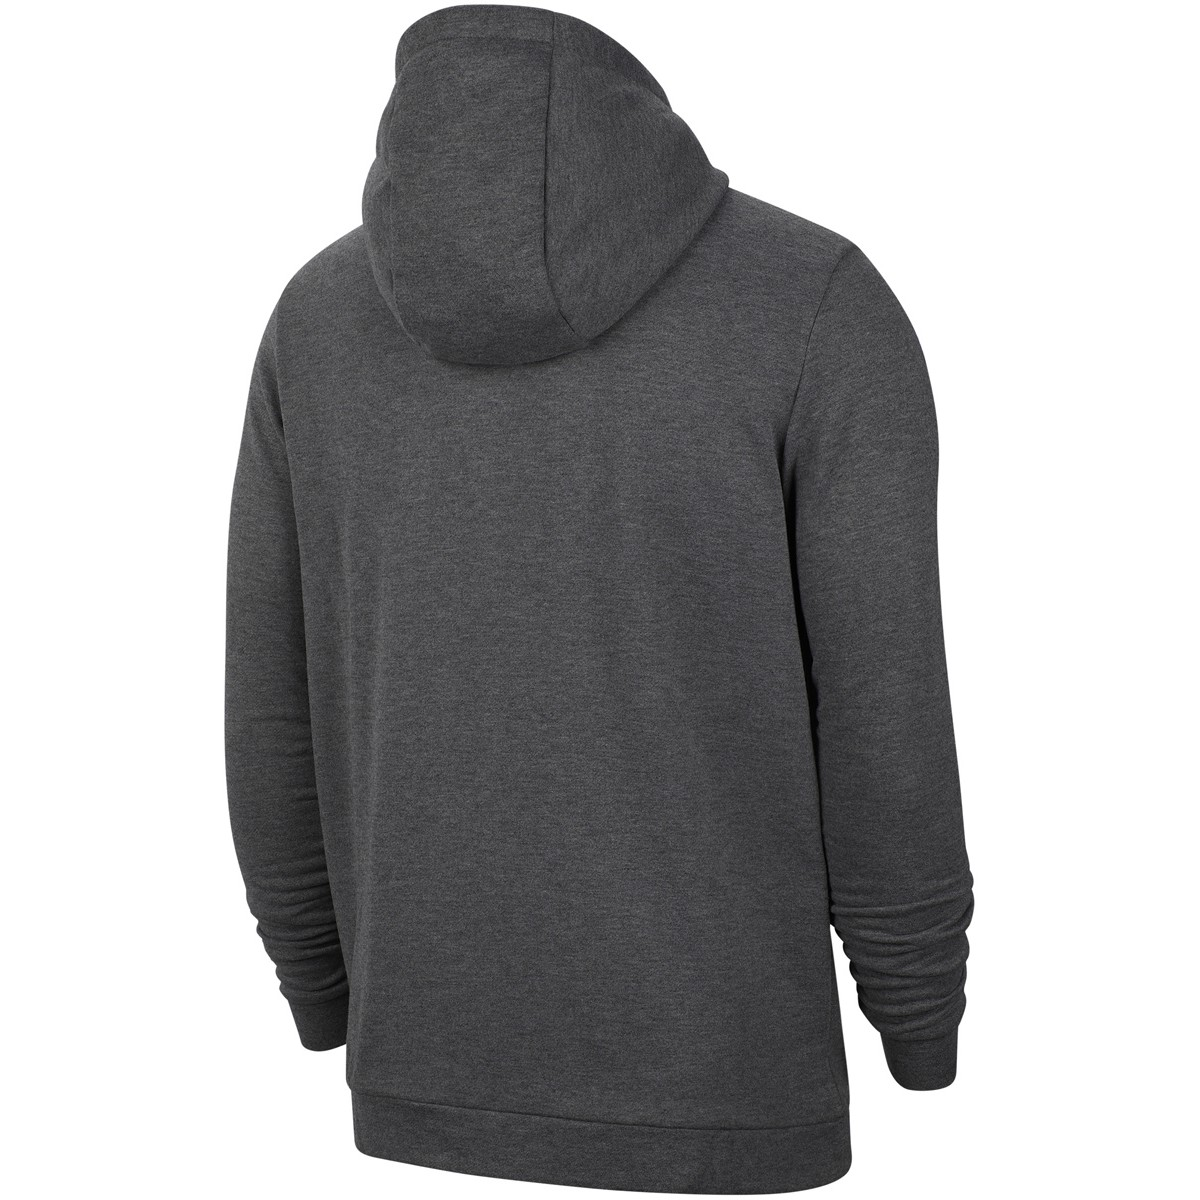 SWEAT NIKE DRI FIT A CAPUCHE ZIPPE NIKE Homme